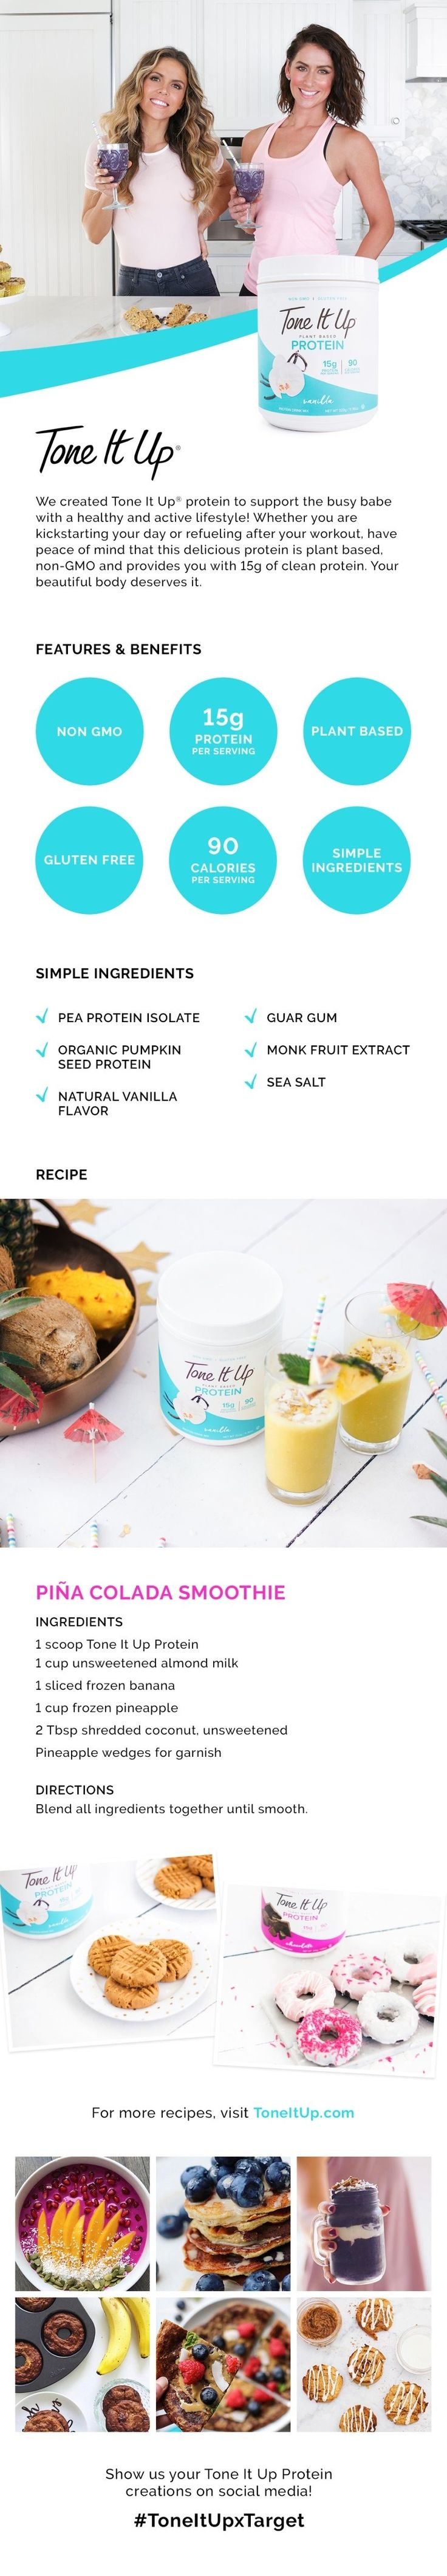 Whether you are kickstarting your day or refueling after your workout, we created this delicious plant based Tone It Up protein to support the busy babe with a healthy and active lifestyle!